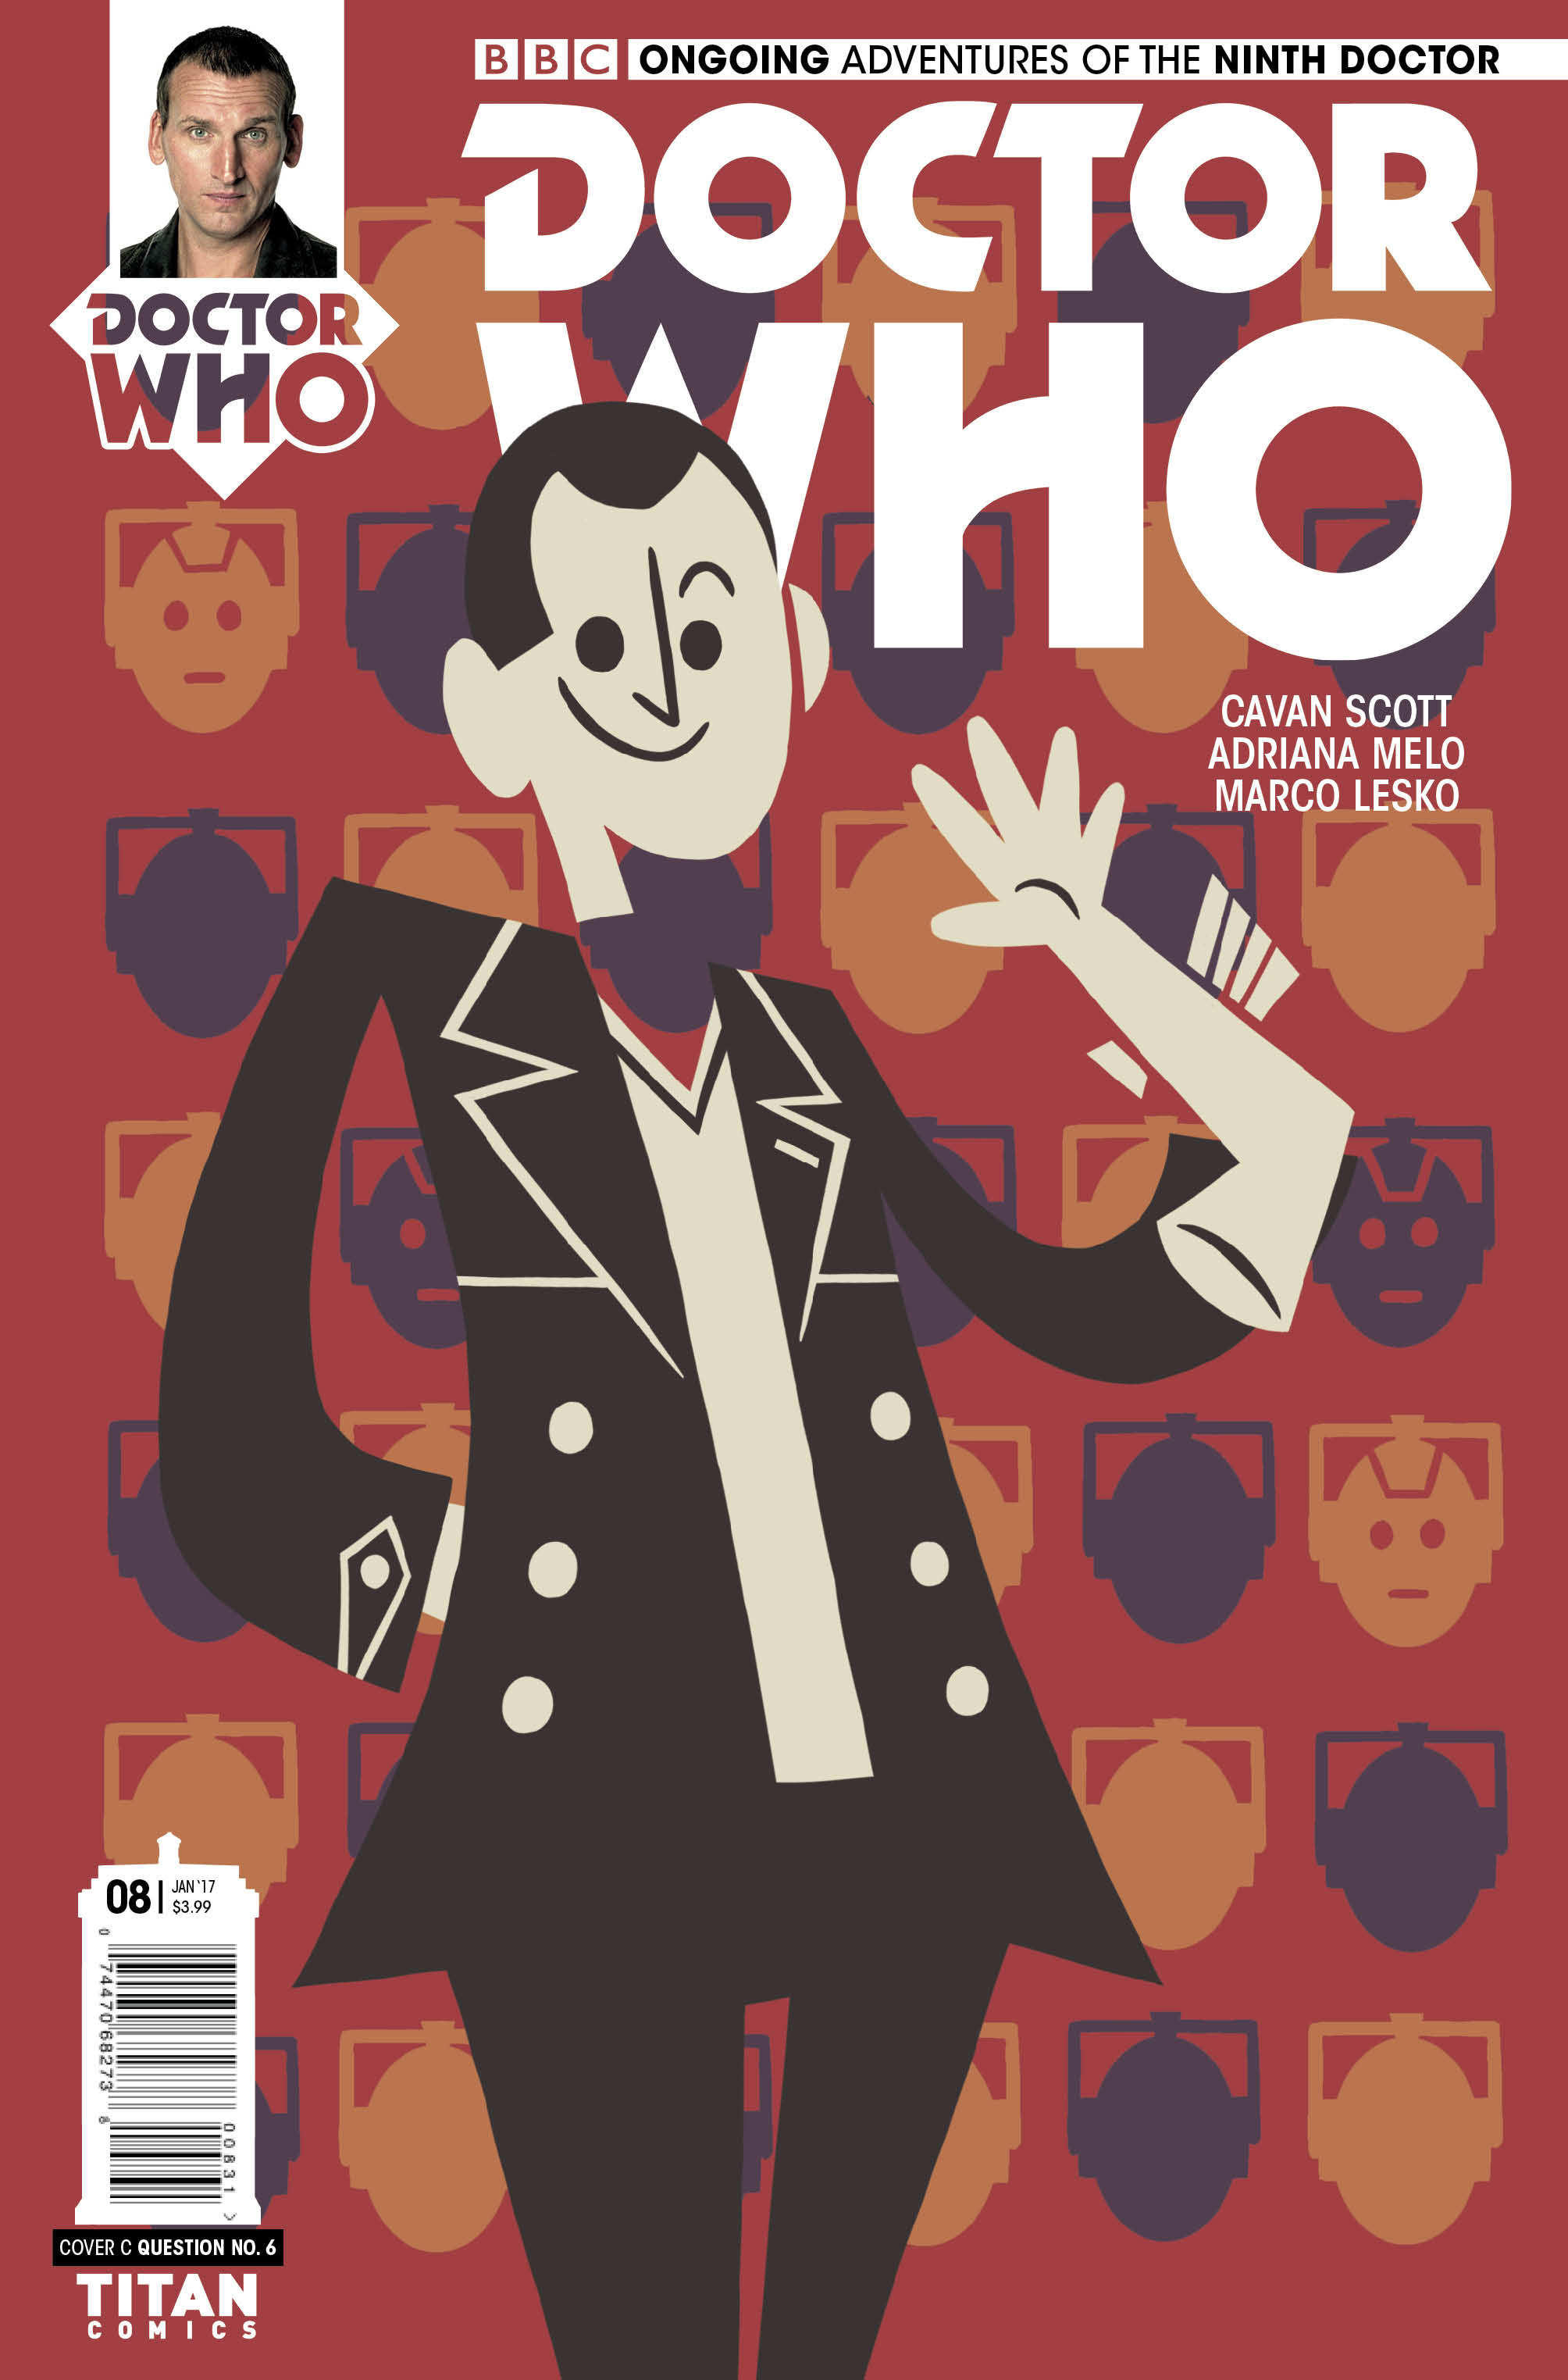 Ninth Doctor #8 Cover_C_Question_No_6 (Credit: Titan)